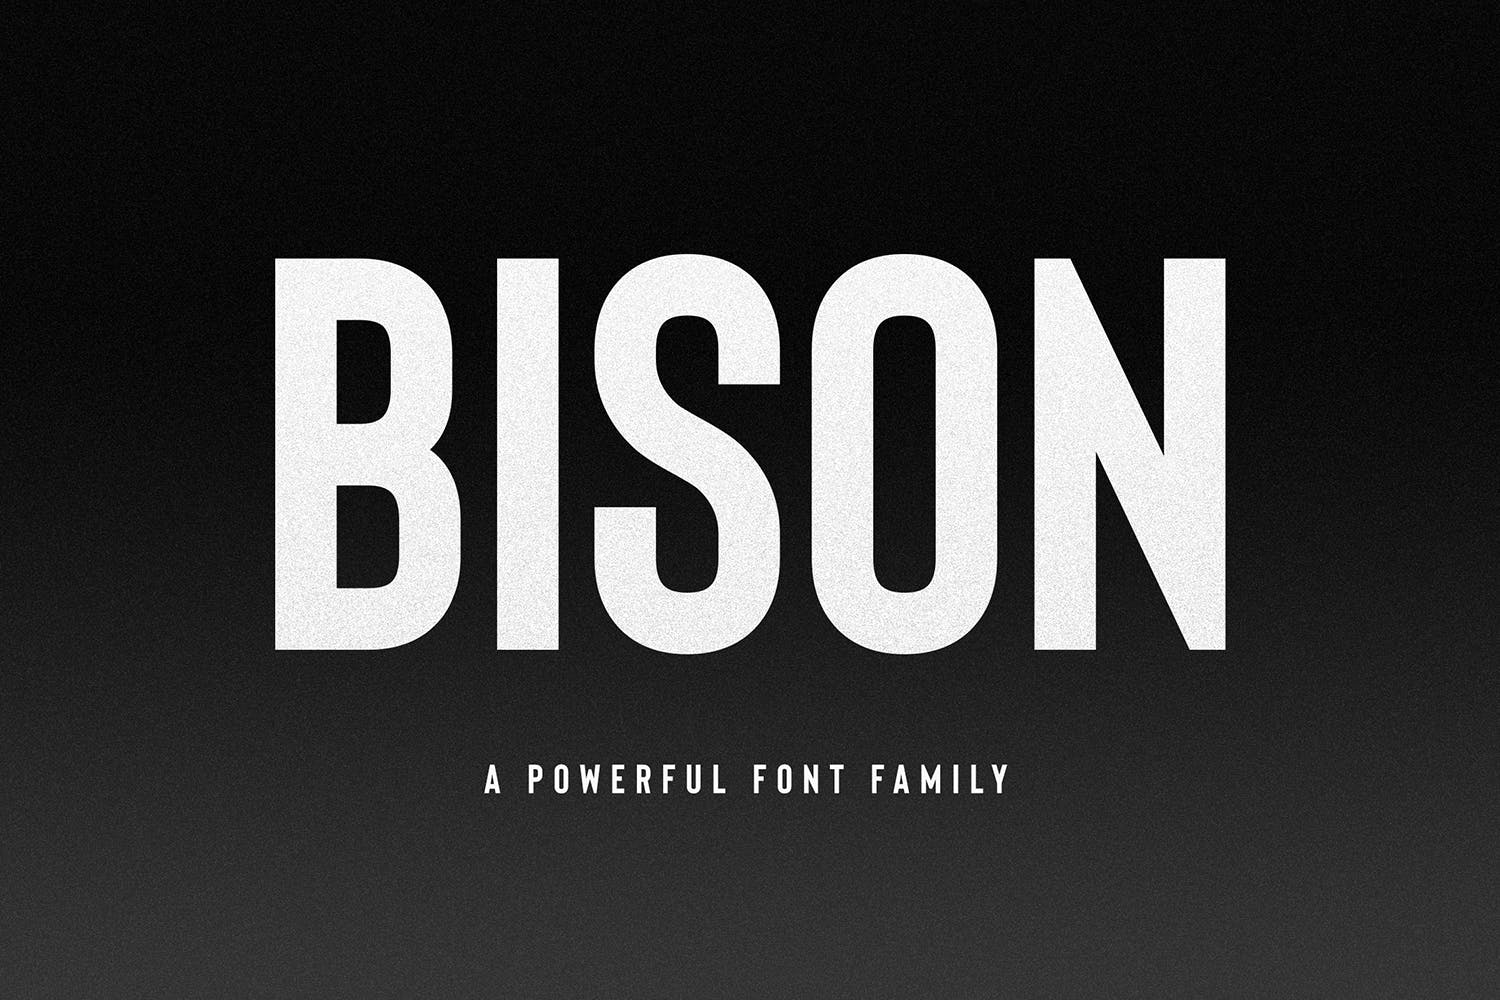 Title-and-headings:-Bison